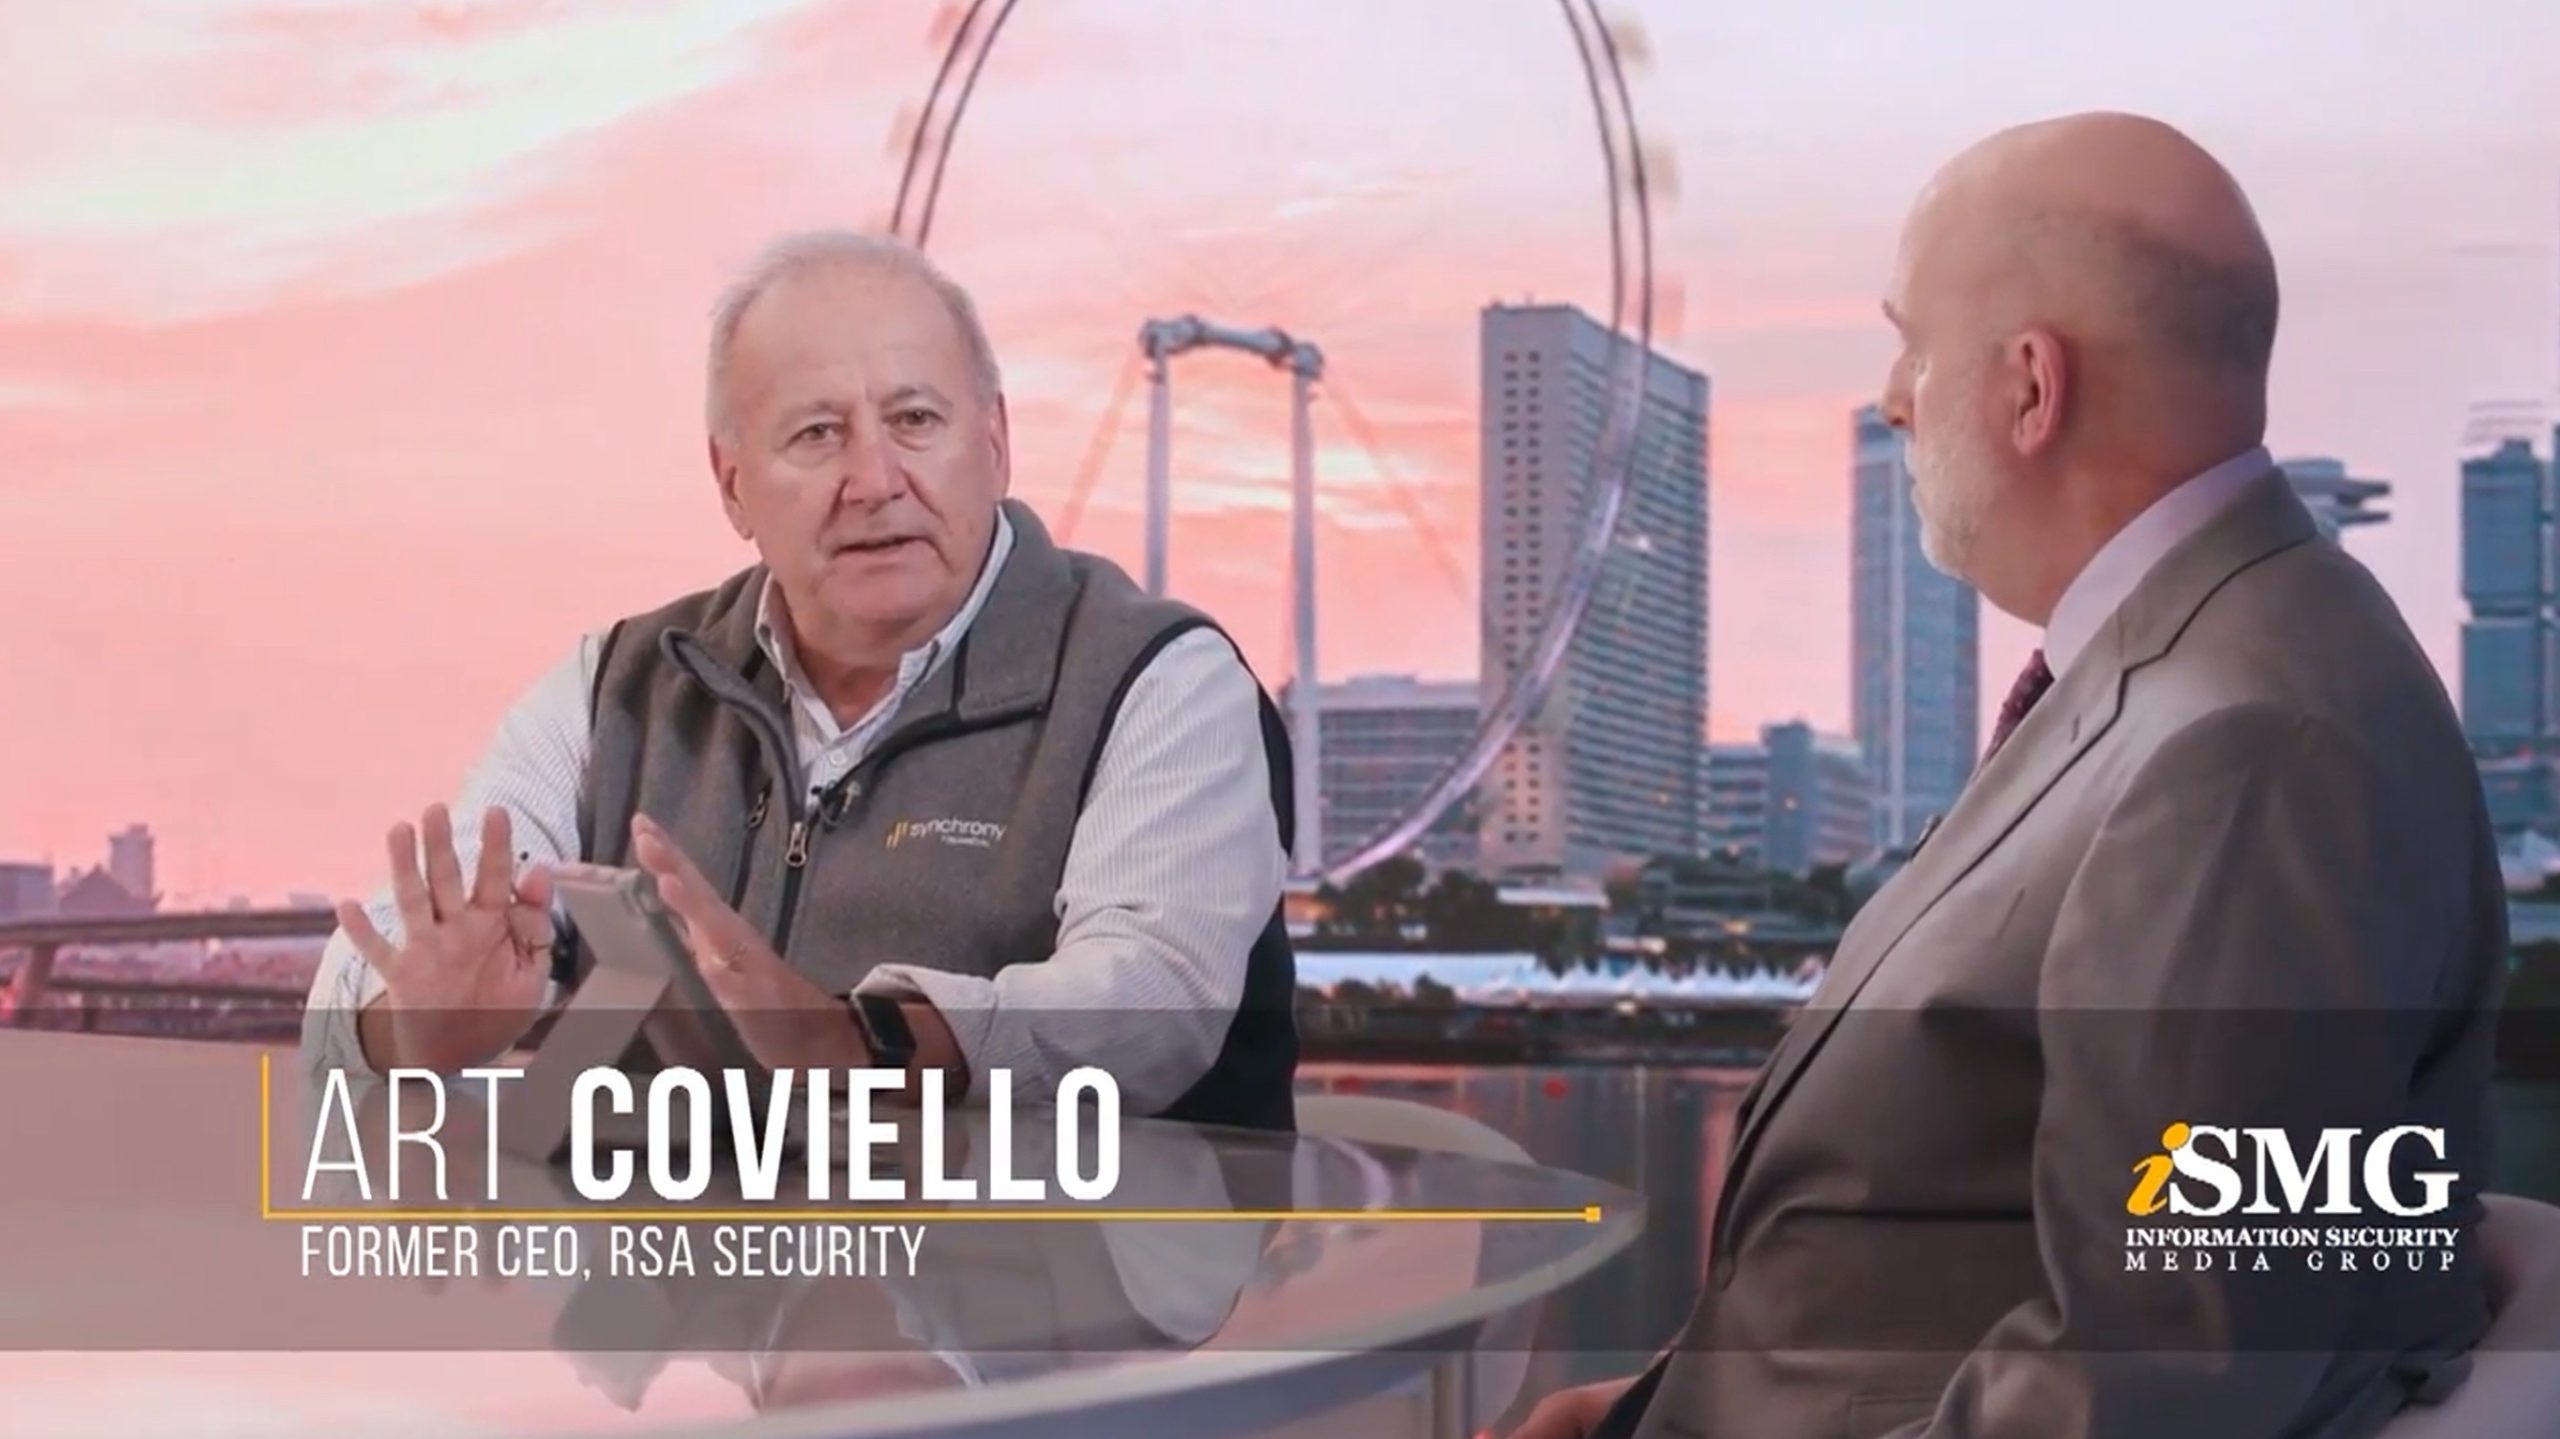 Art Coviello, Former CEO, RSA